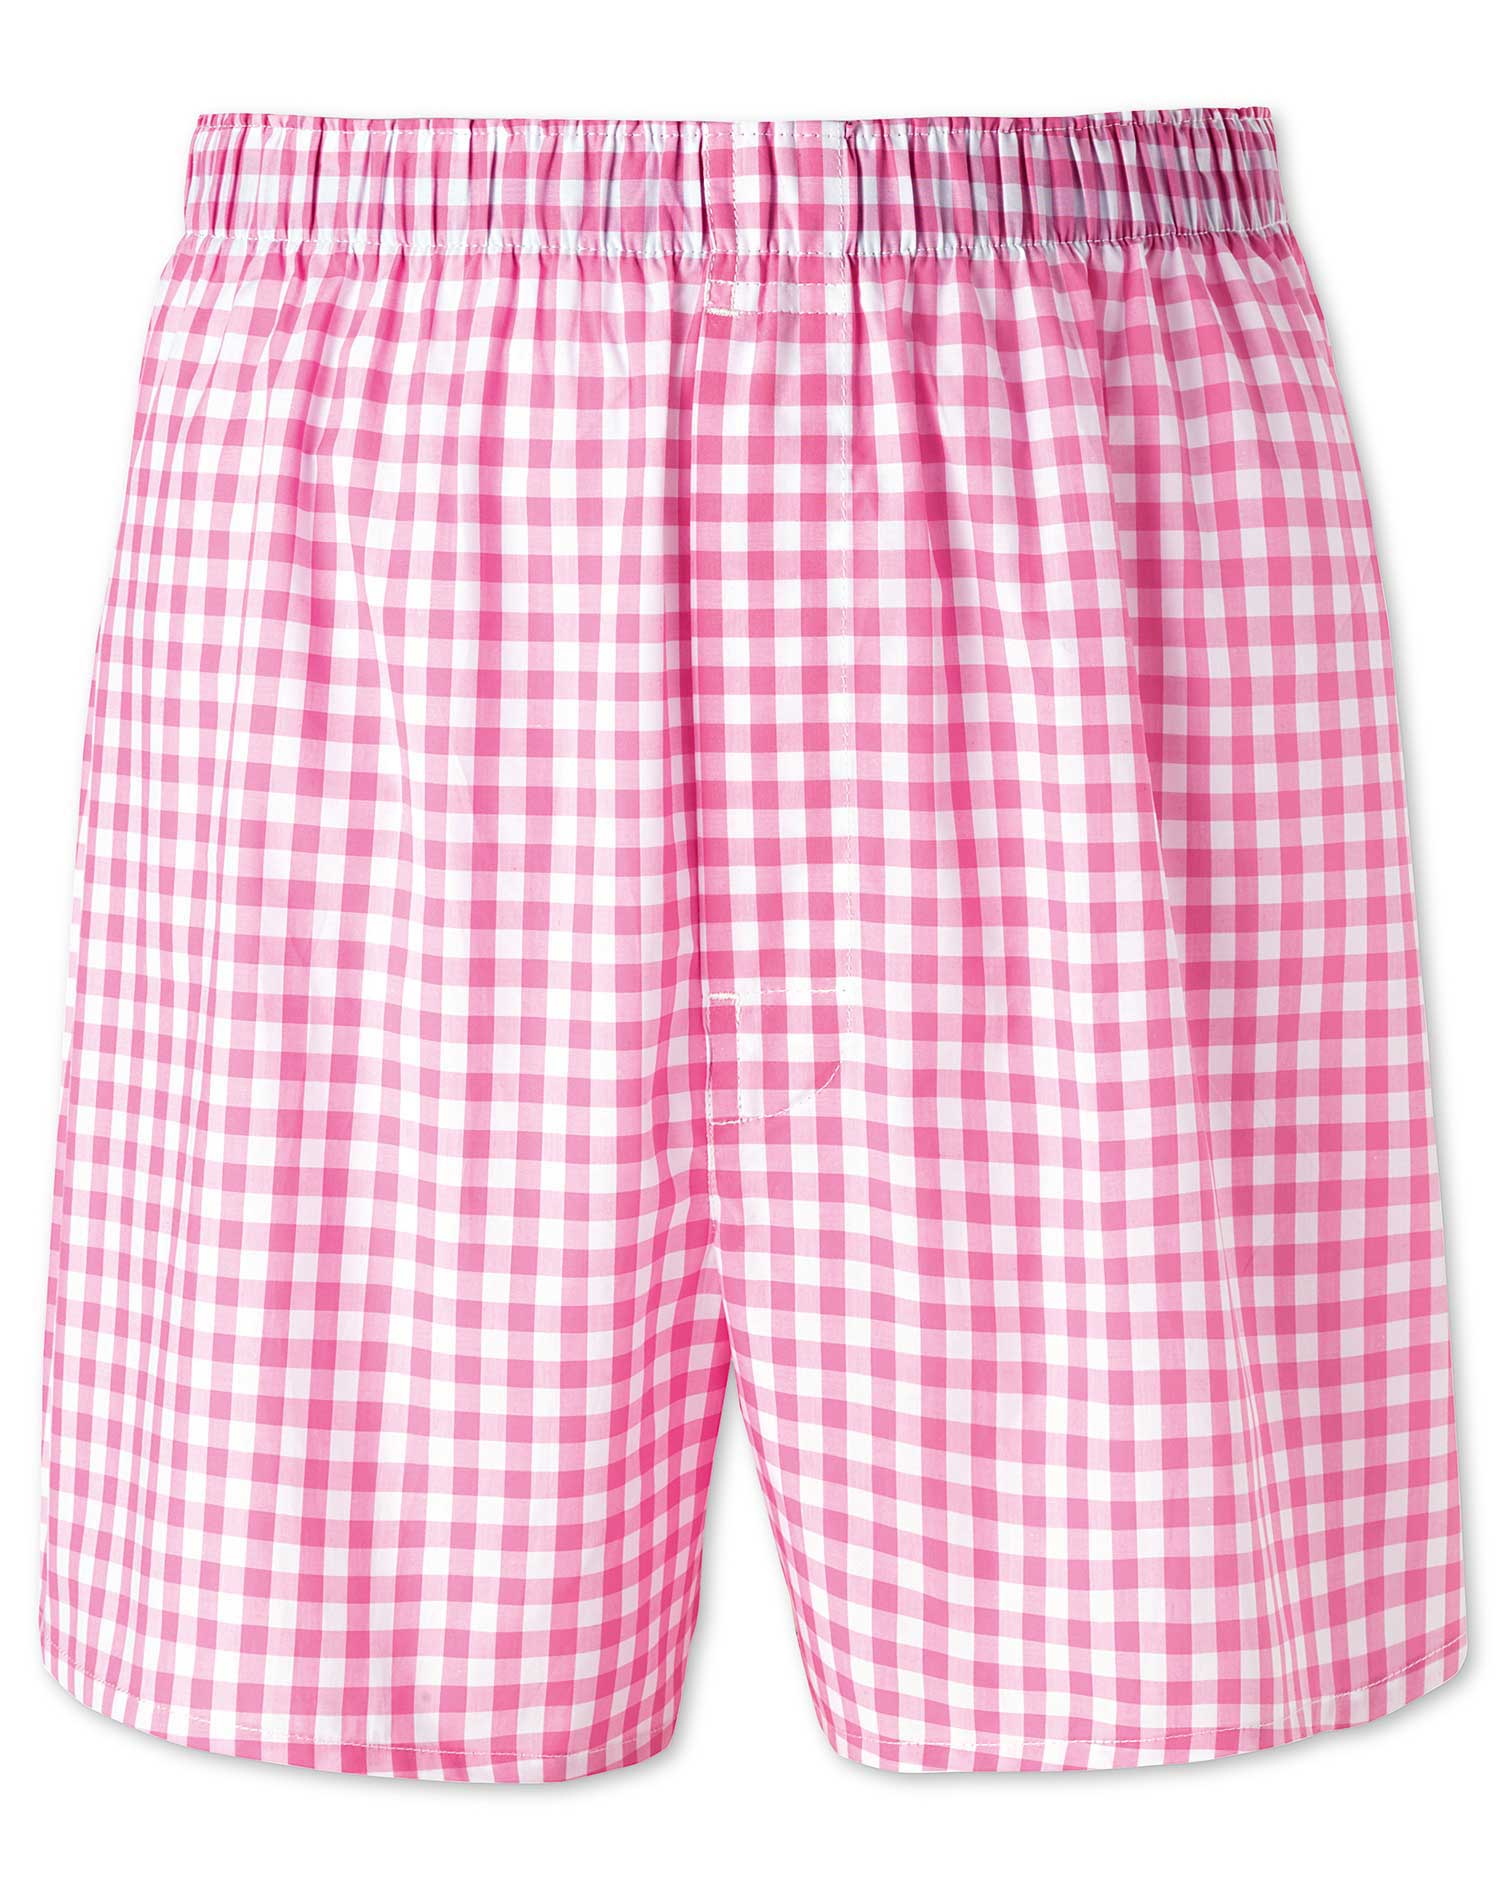 Pink Gingham Woven Boxers Size Medium by Charles Tyrwhitt